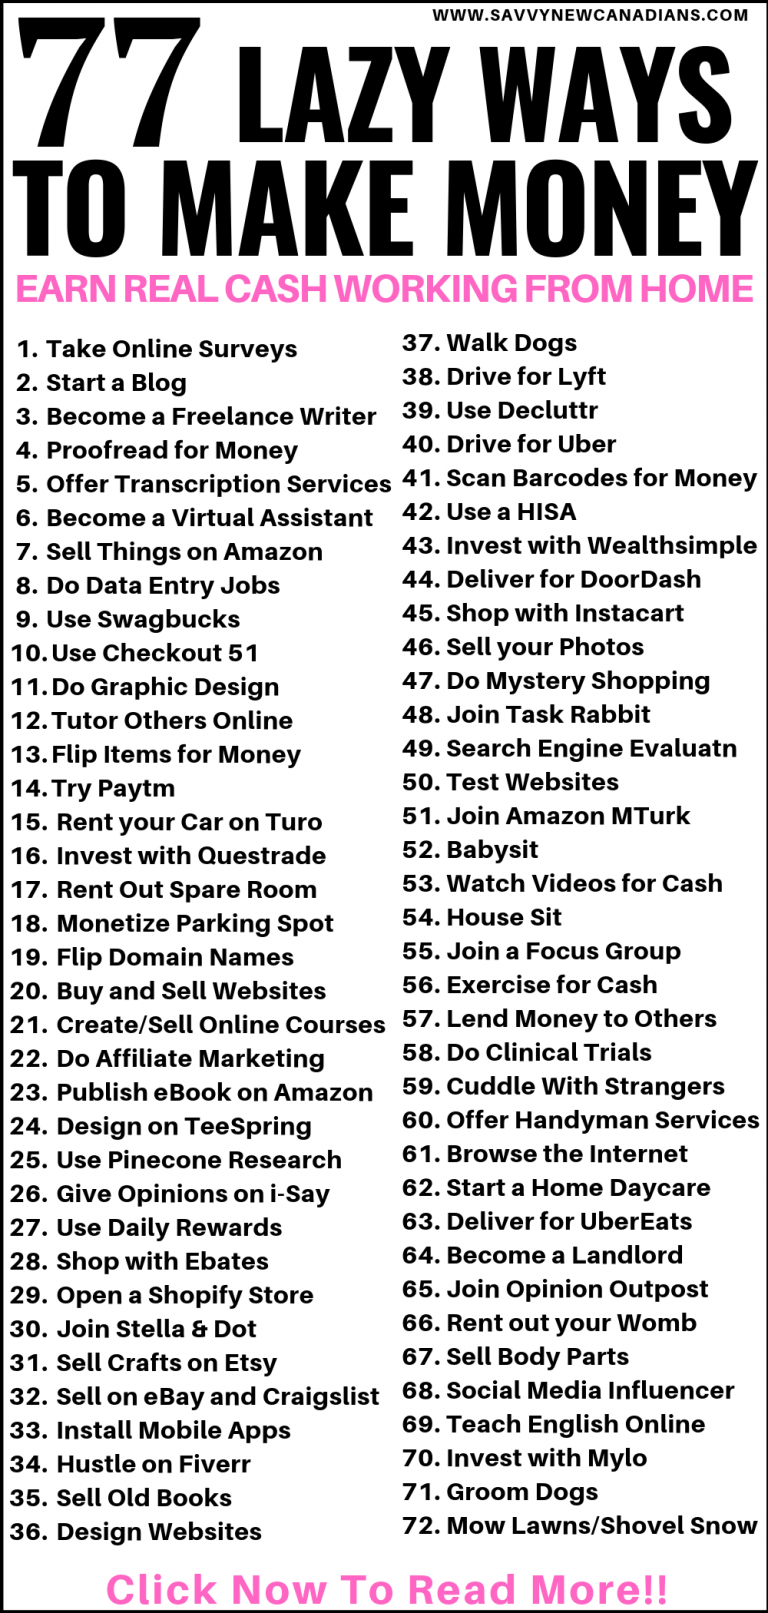 77 Best Ways To Make Money From Home And Online In Canada 2020